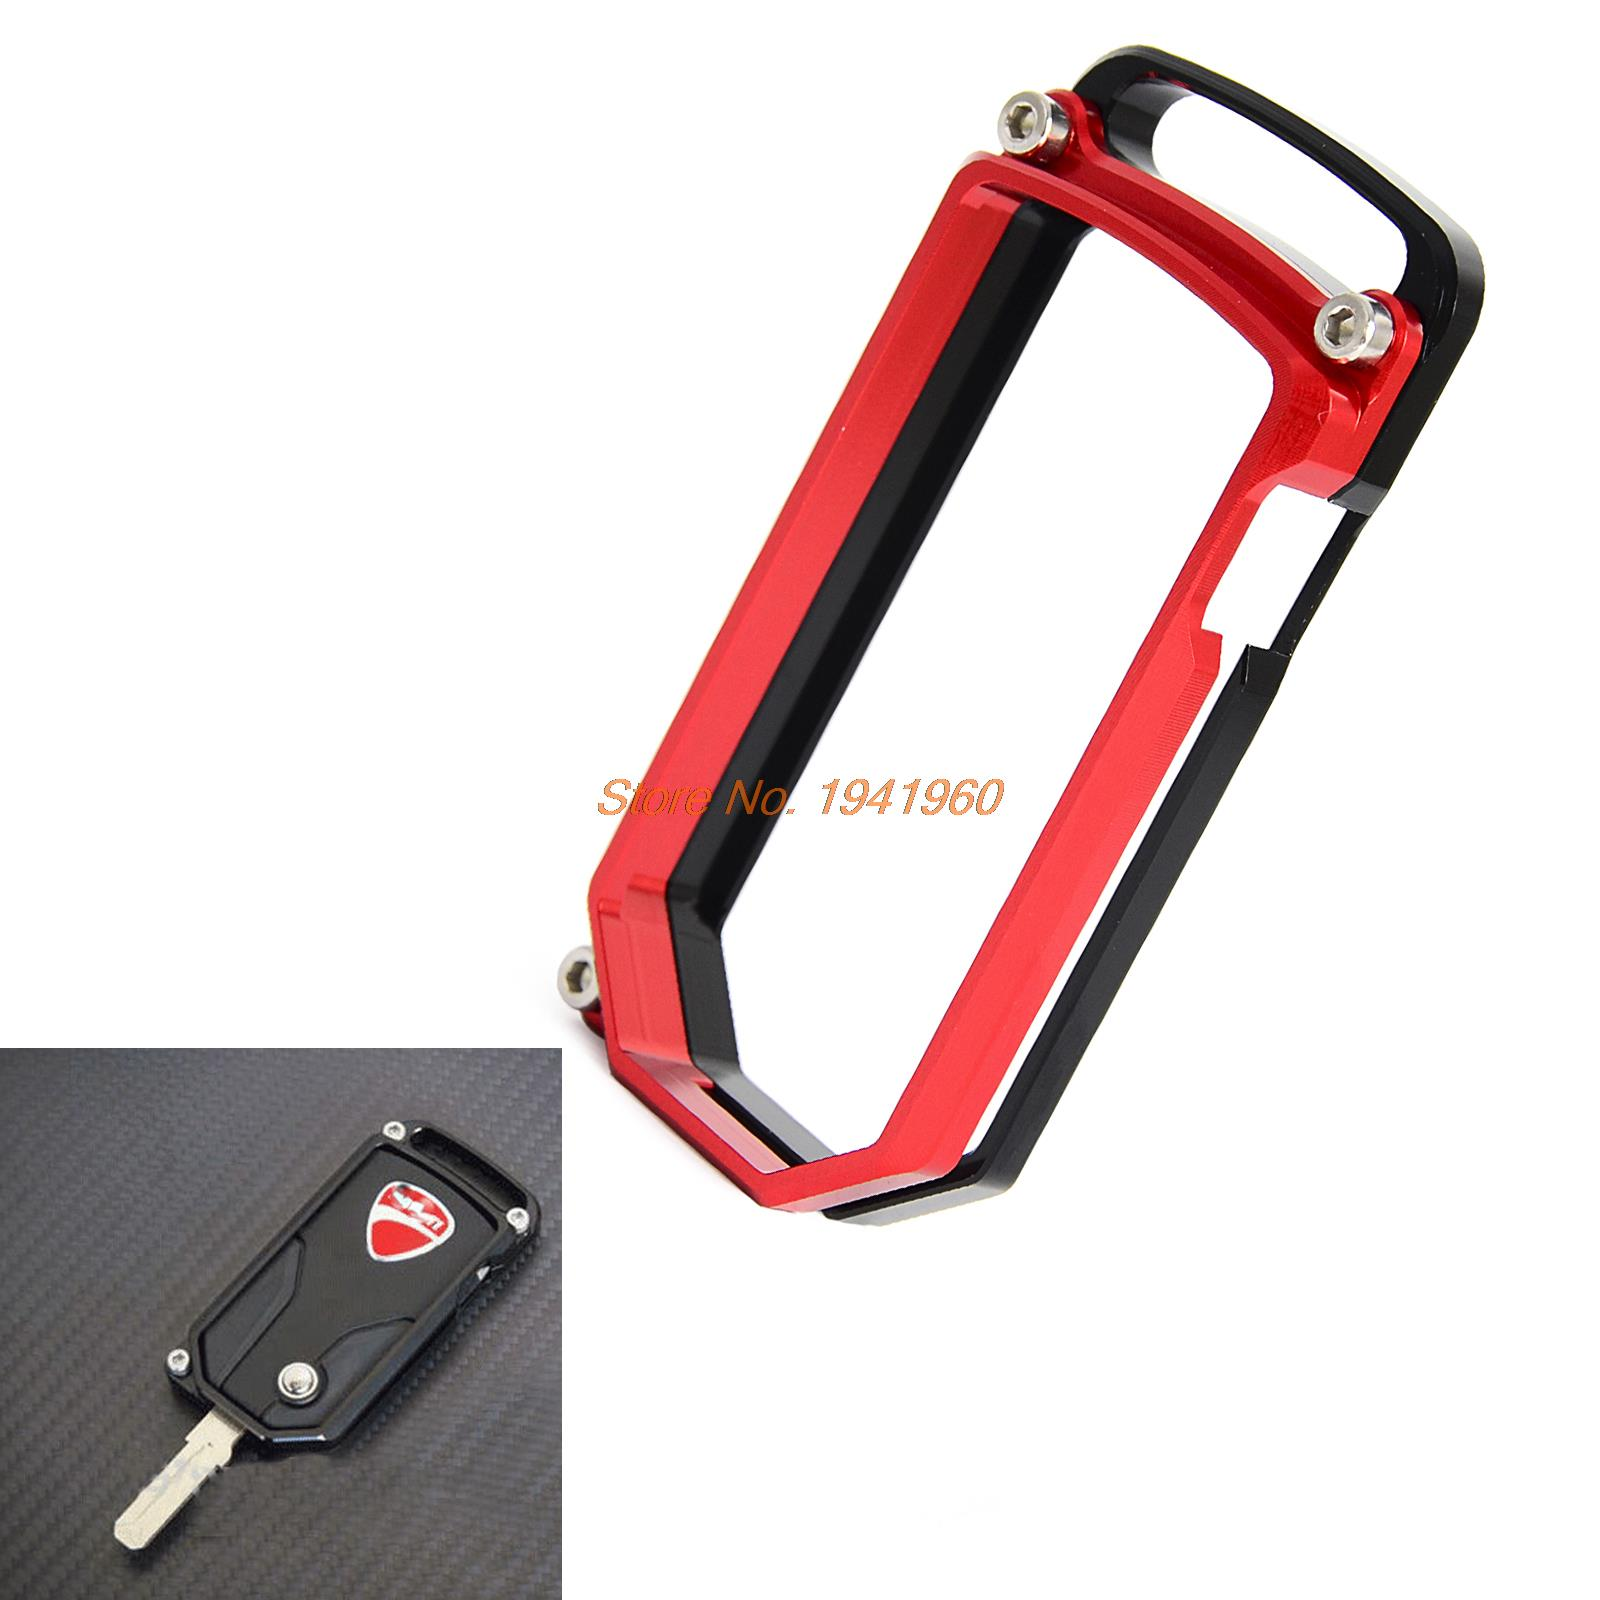 New Style Red Casing CNC Motorcycle Key Remote Cover Case Chain Guard For Ducati Diavel Strada 2013 Ducati Diavel Dark 2013 cnc key case smart key cover for ducati diavel 2011 2016 multitrada 1200 1200s mts1200 2010 2014 new